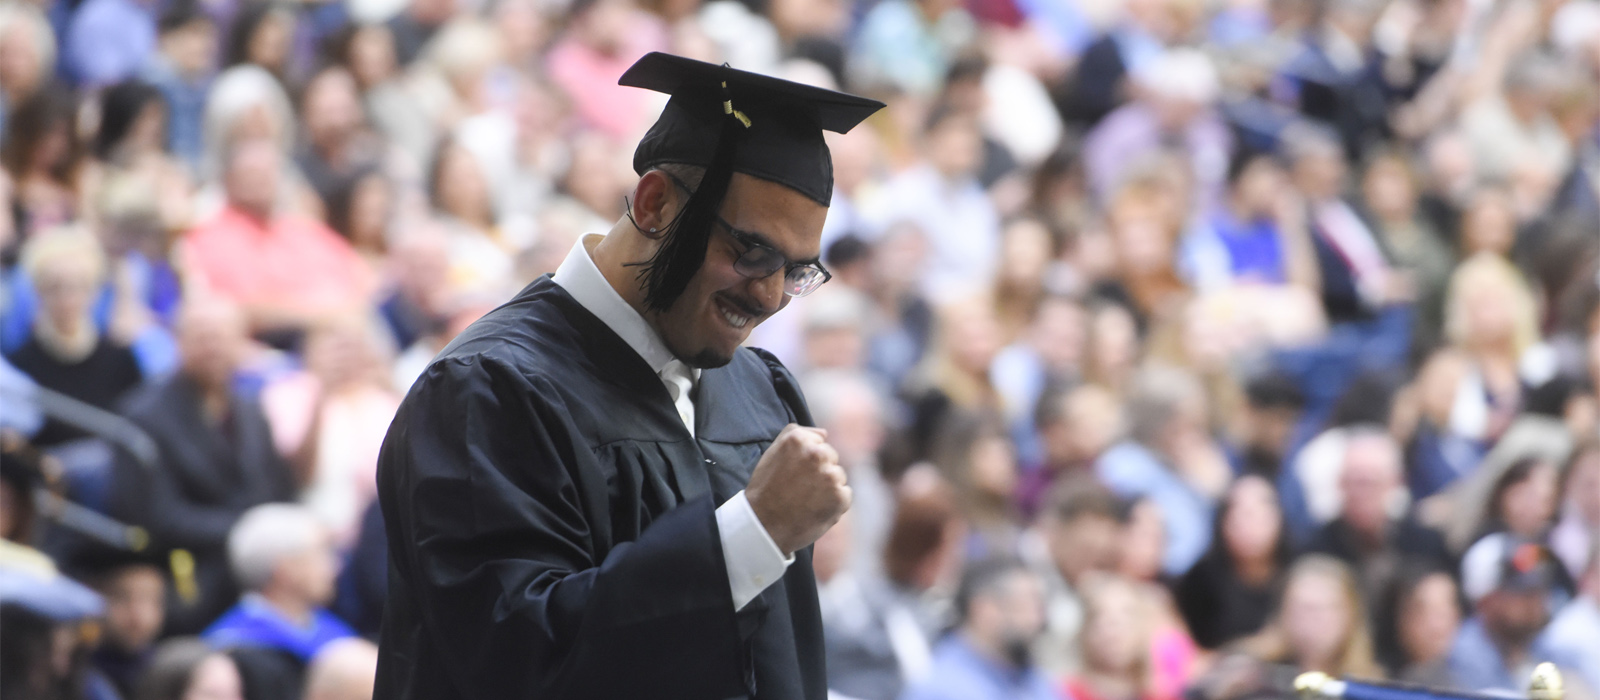 A Belmont graduate celebrates while crossing the stage at commencement.